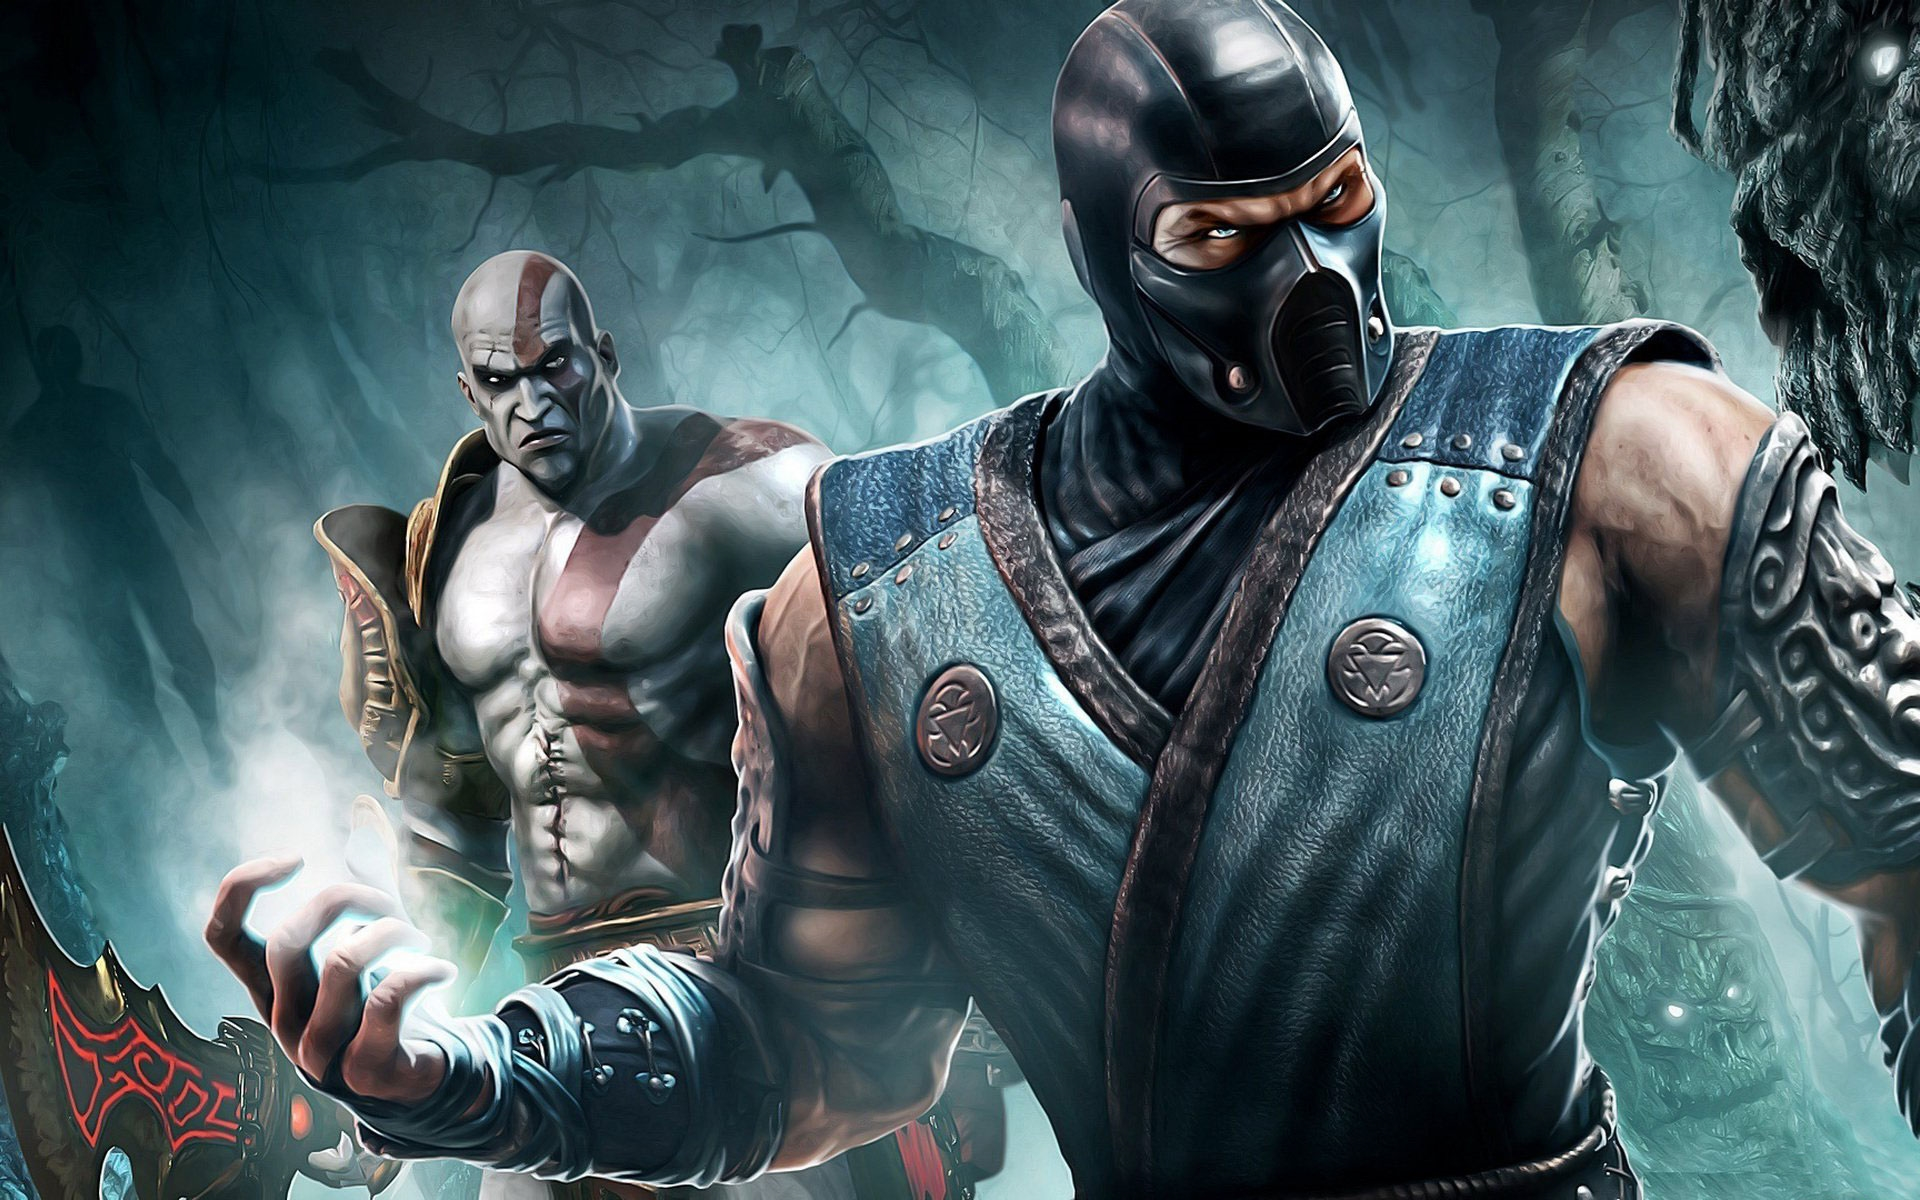 Mortal Kombat: Komplete Edition — DarkStation